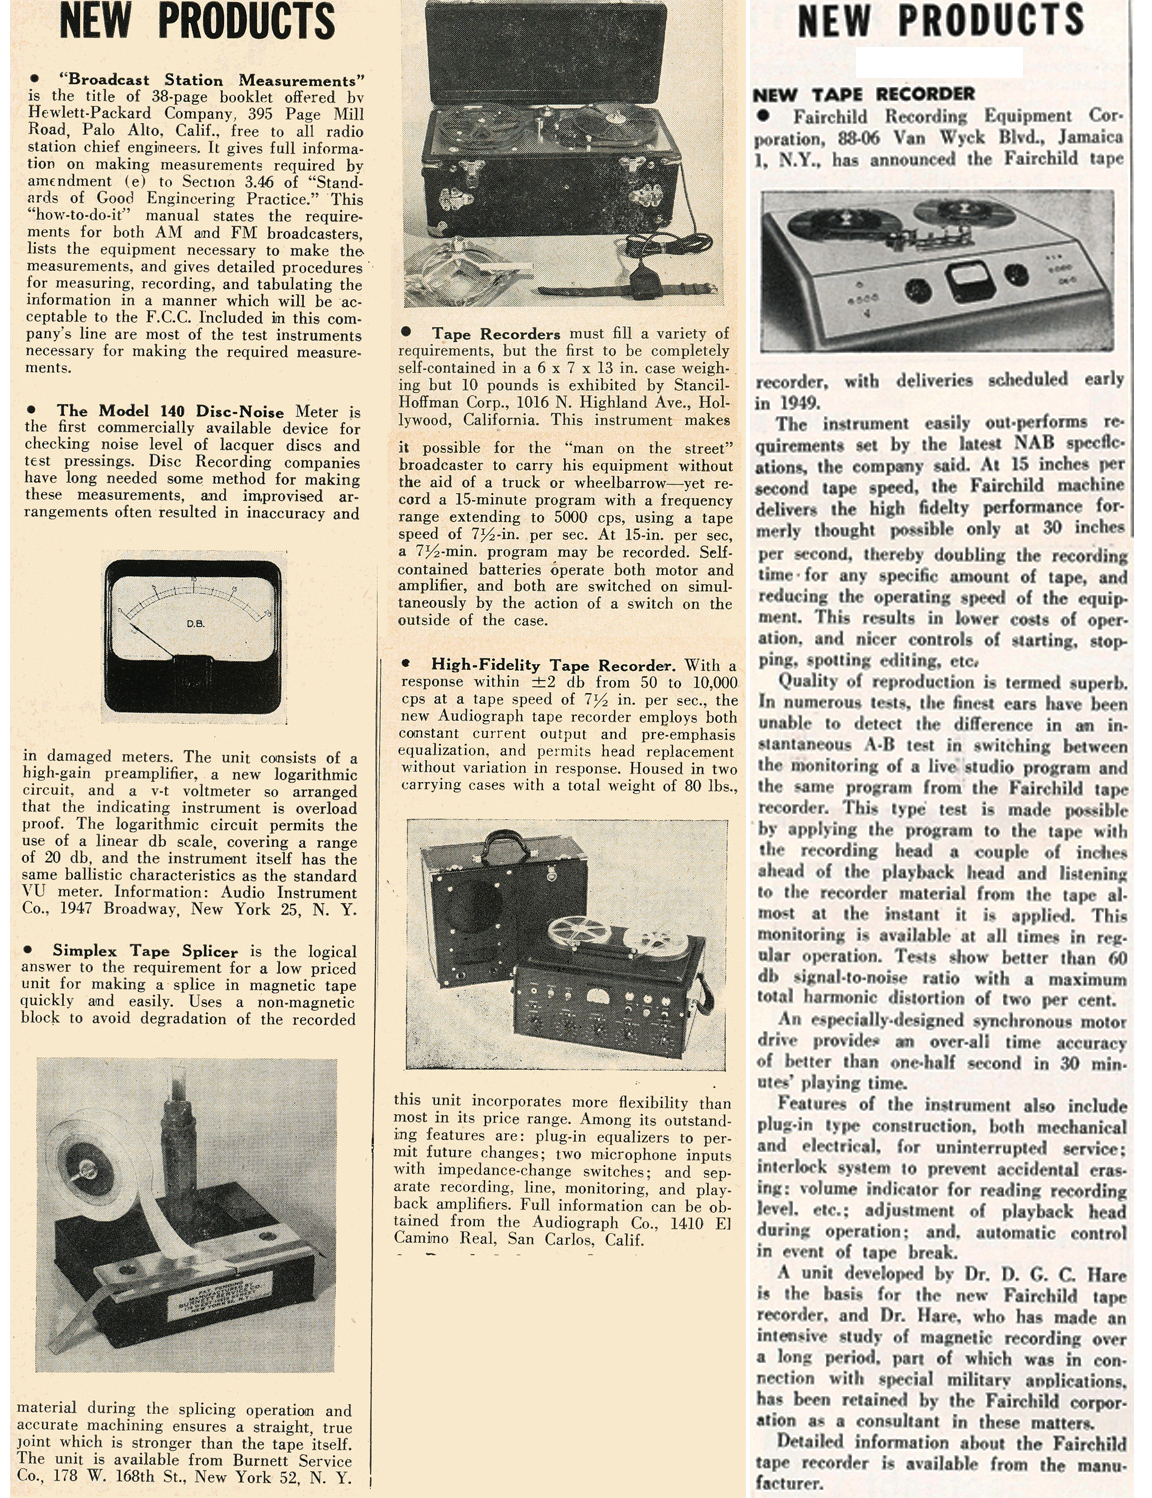 1949 listing of new products in Reel2ReelTexas.com's vintage recording collection